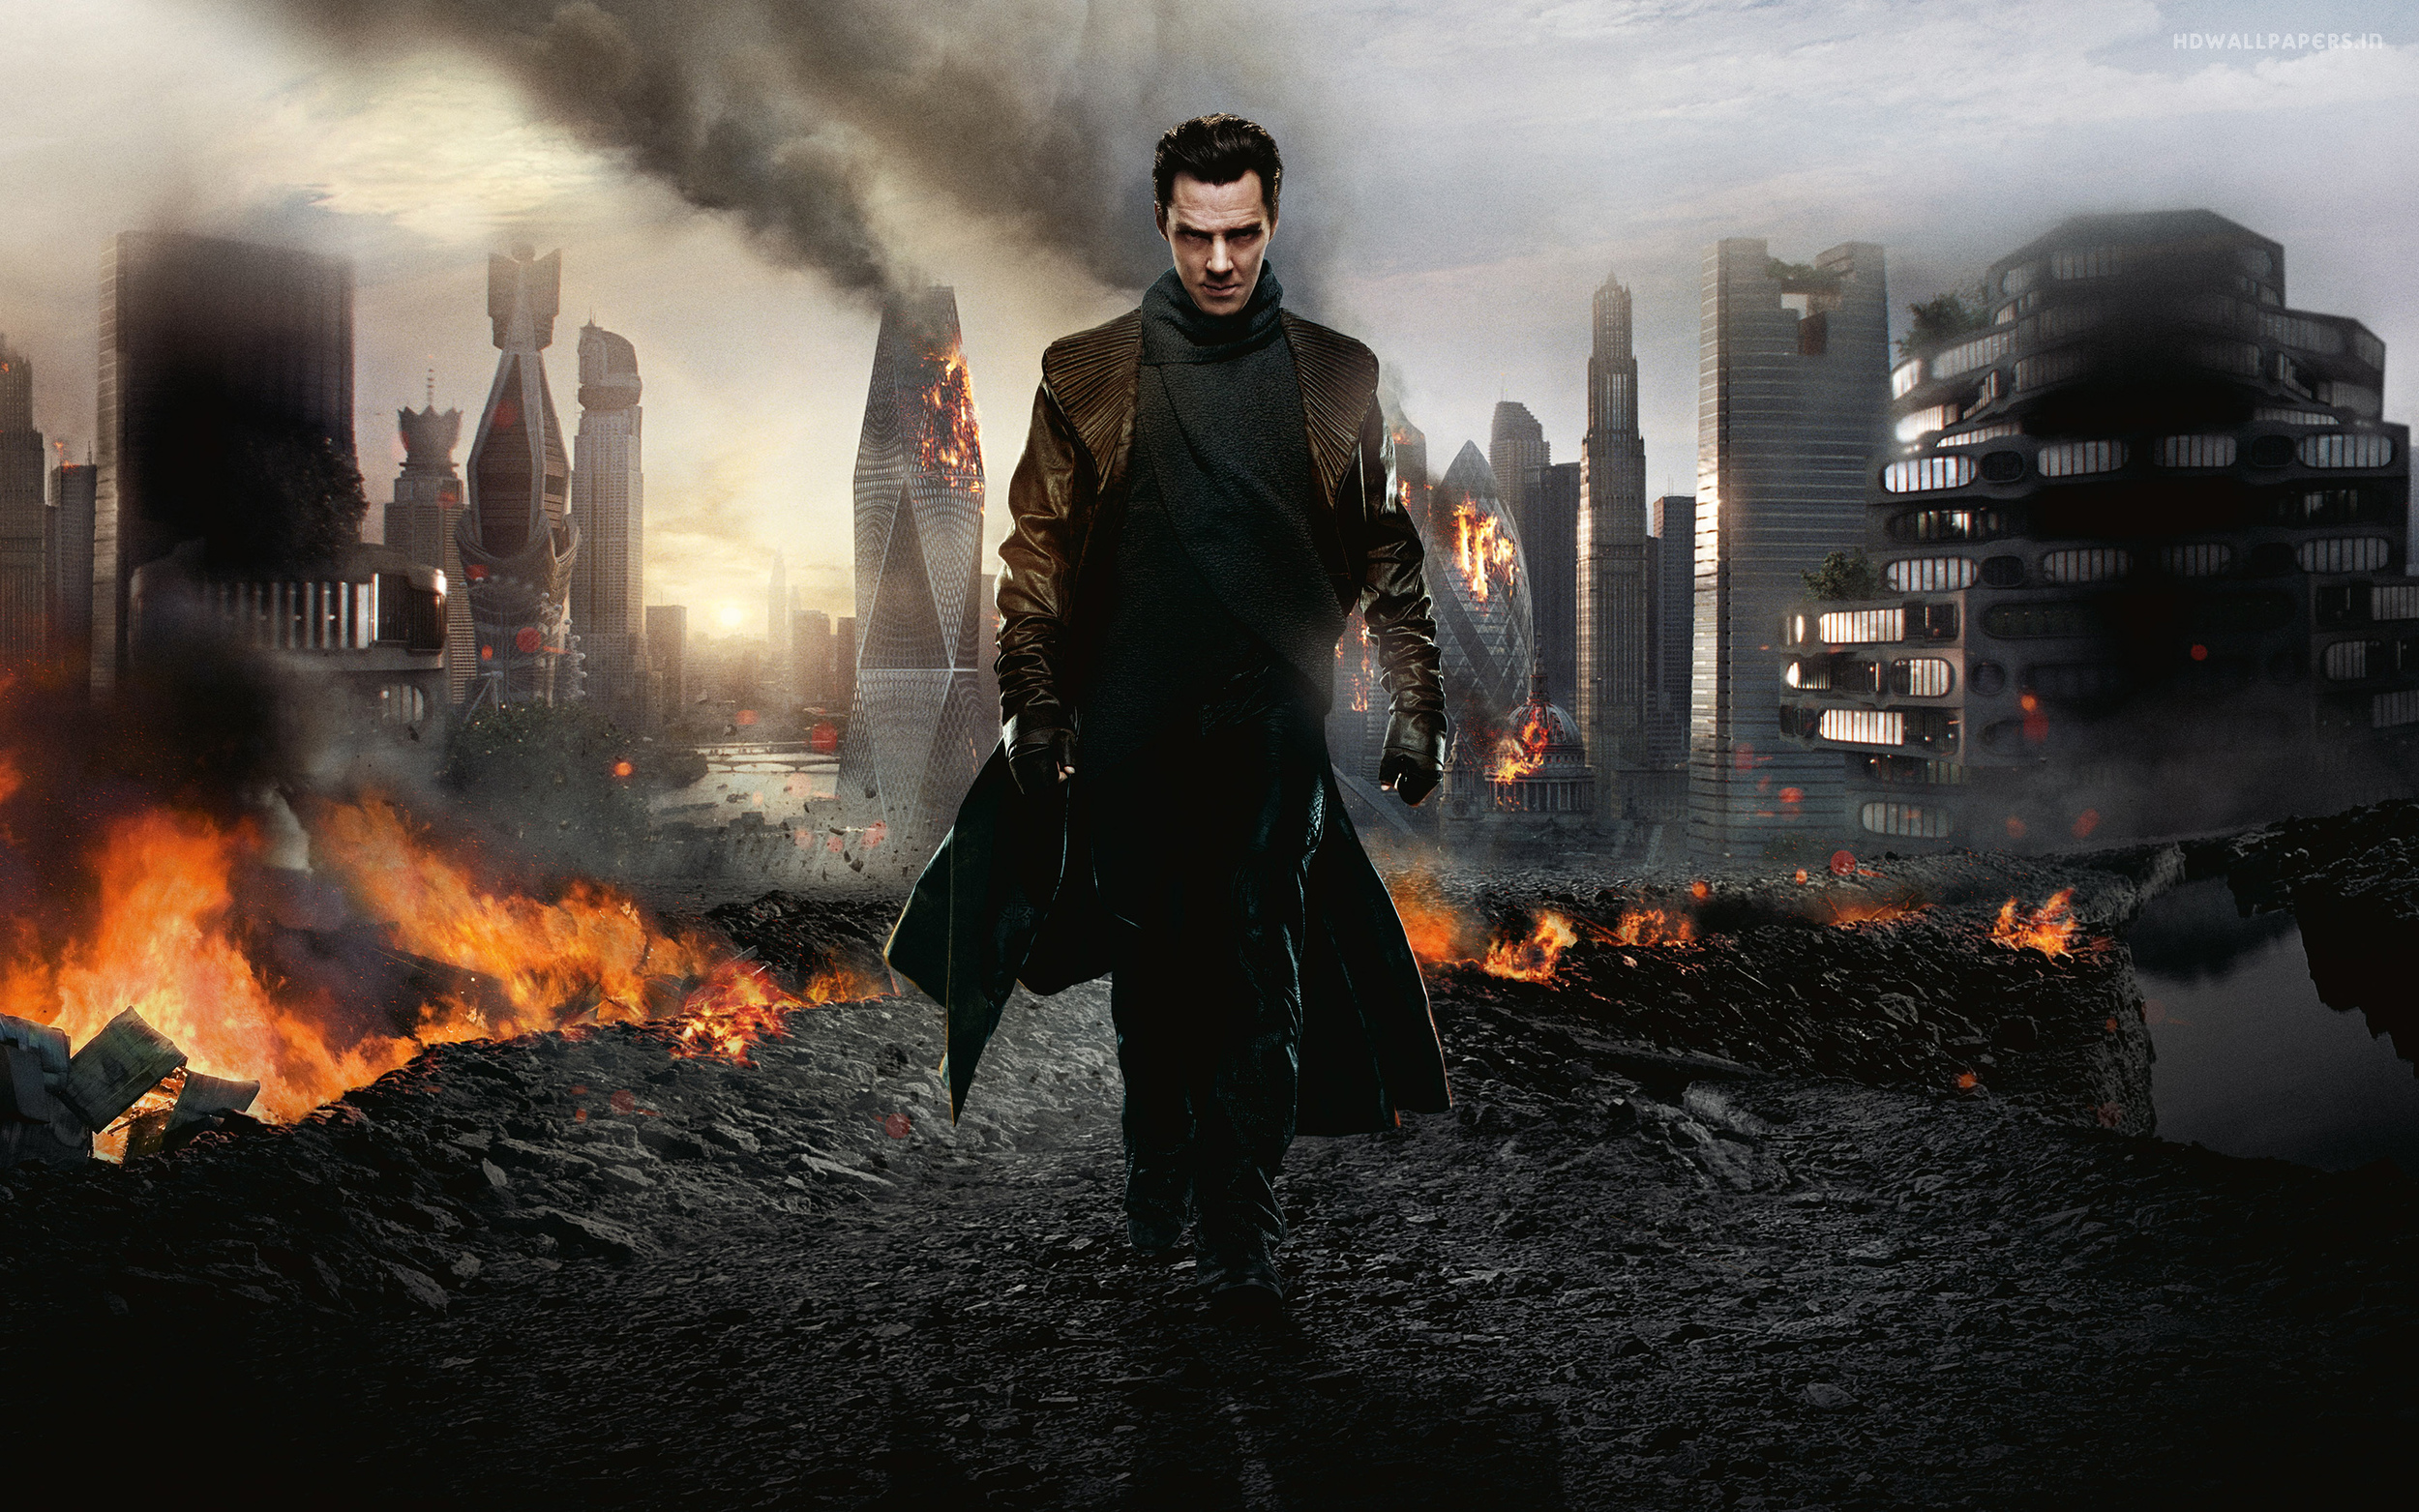 star_trek_into_darkness_2013-wide.jpg